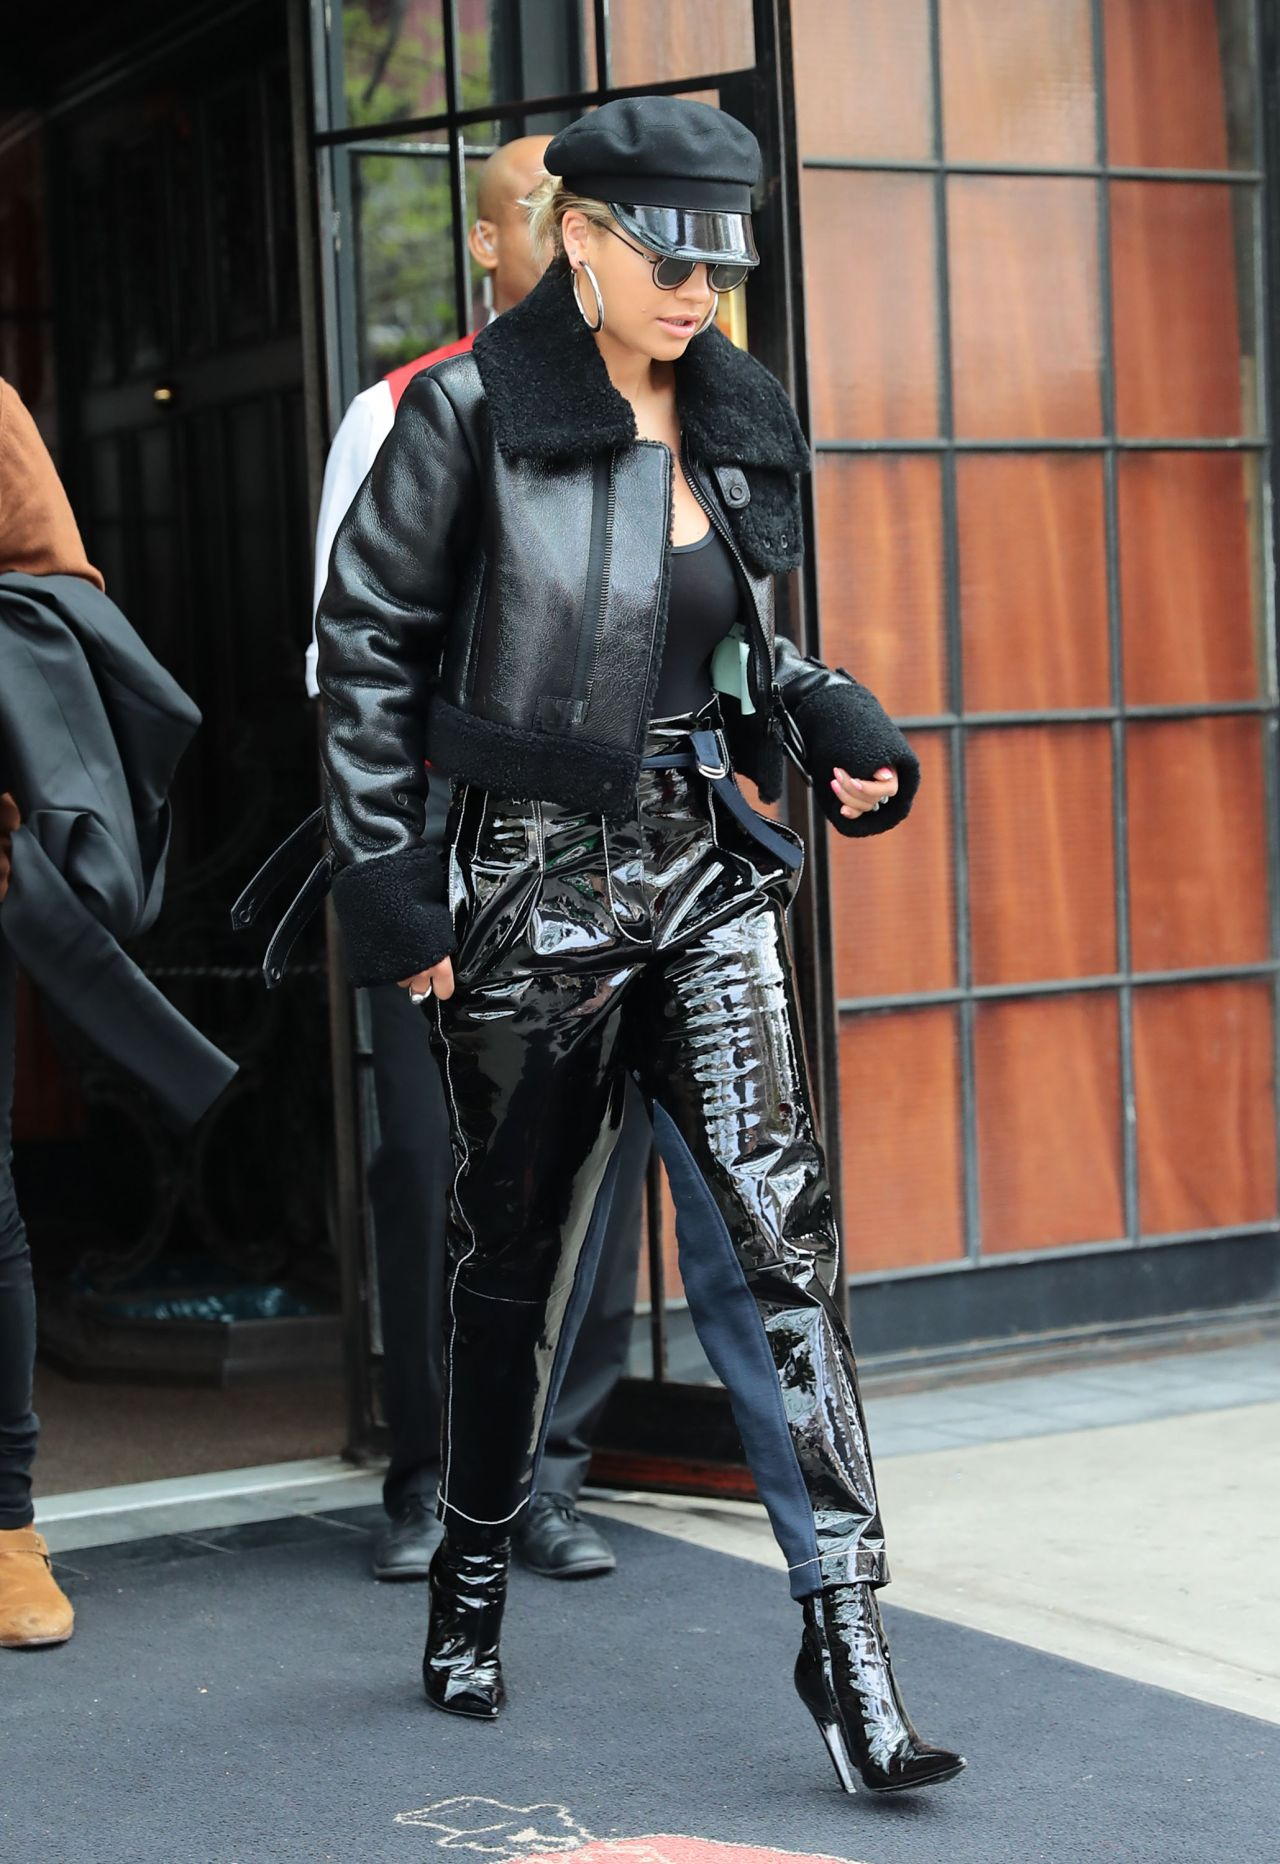 Rita Ora In An All Black Outfit Arriving For A